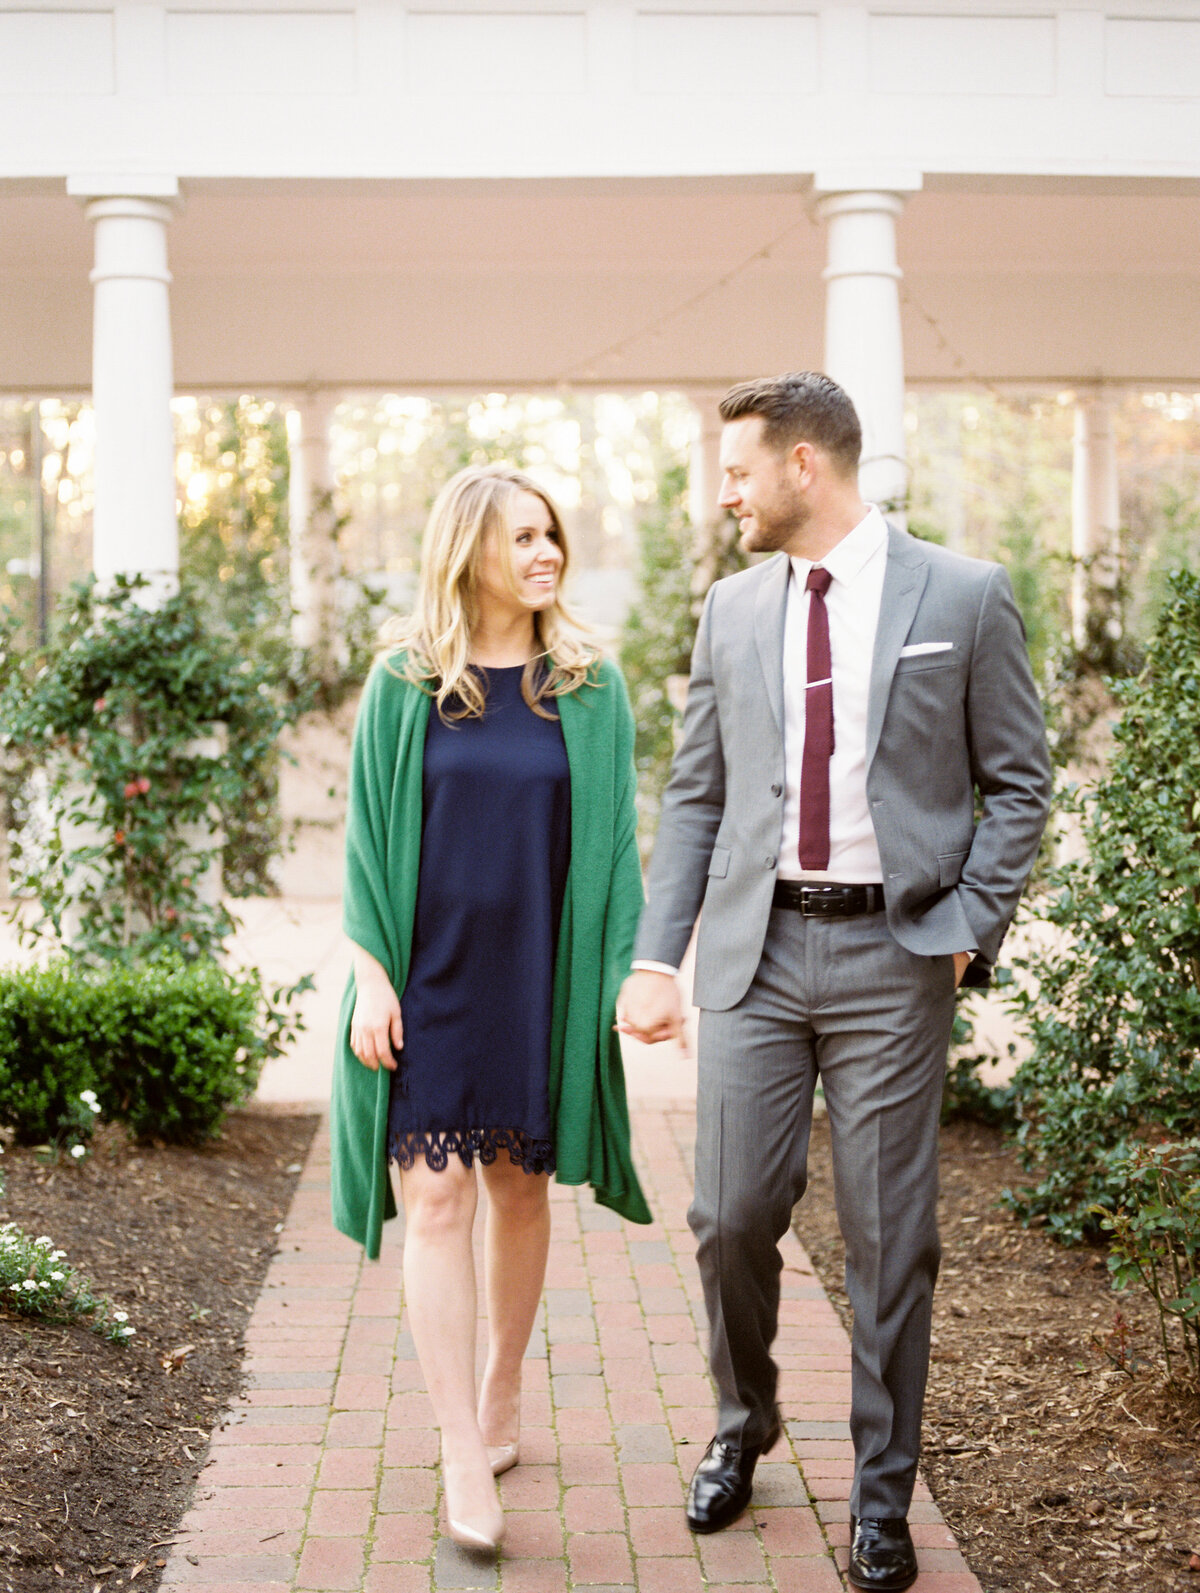 Engagement Photography at Mims House in Holly Springs, NC 19